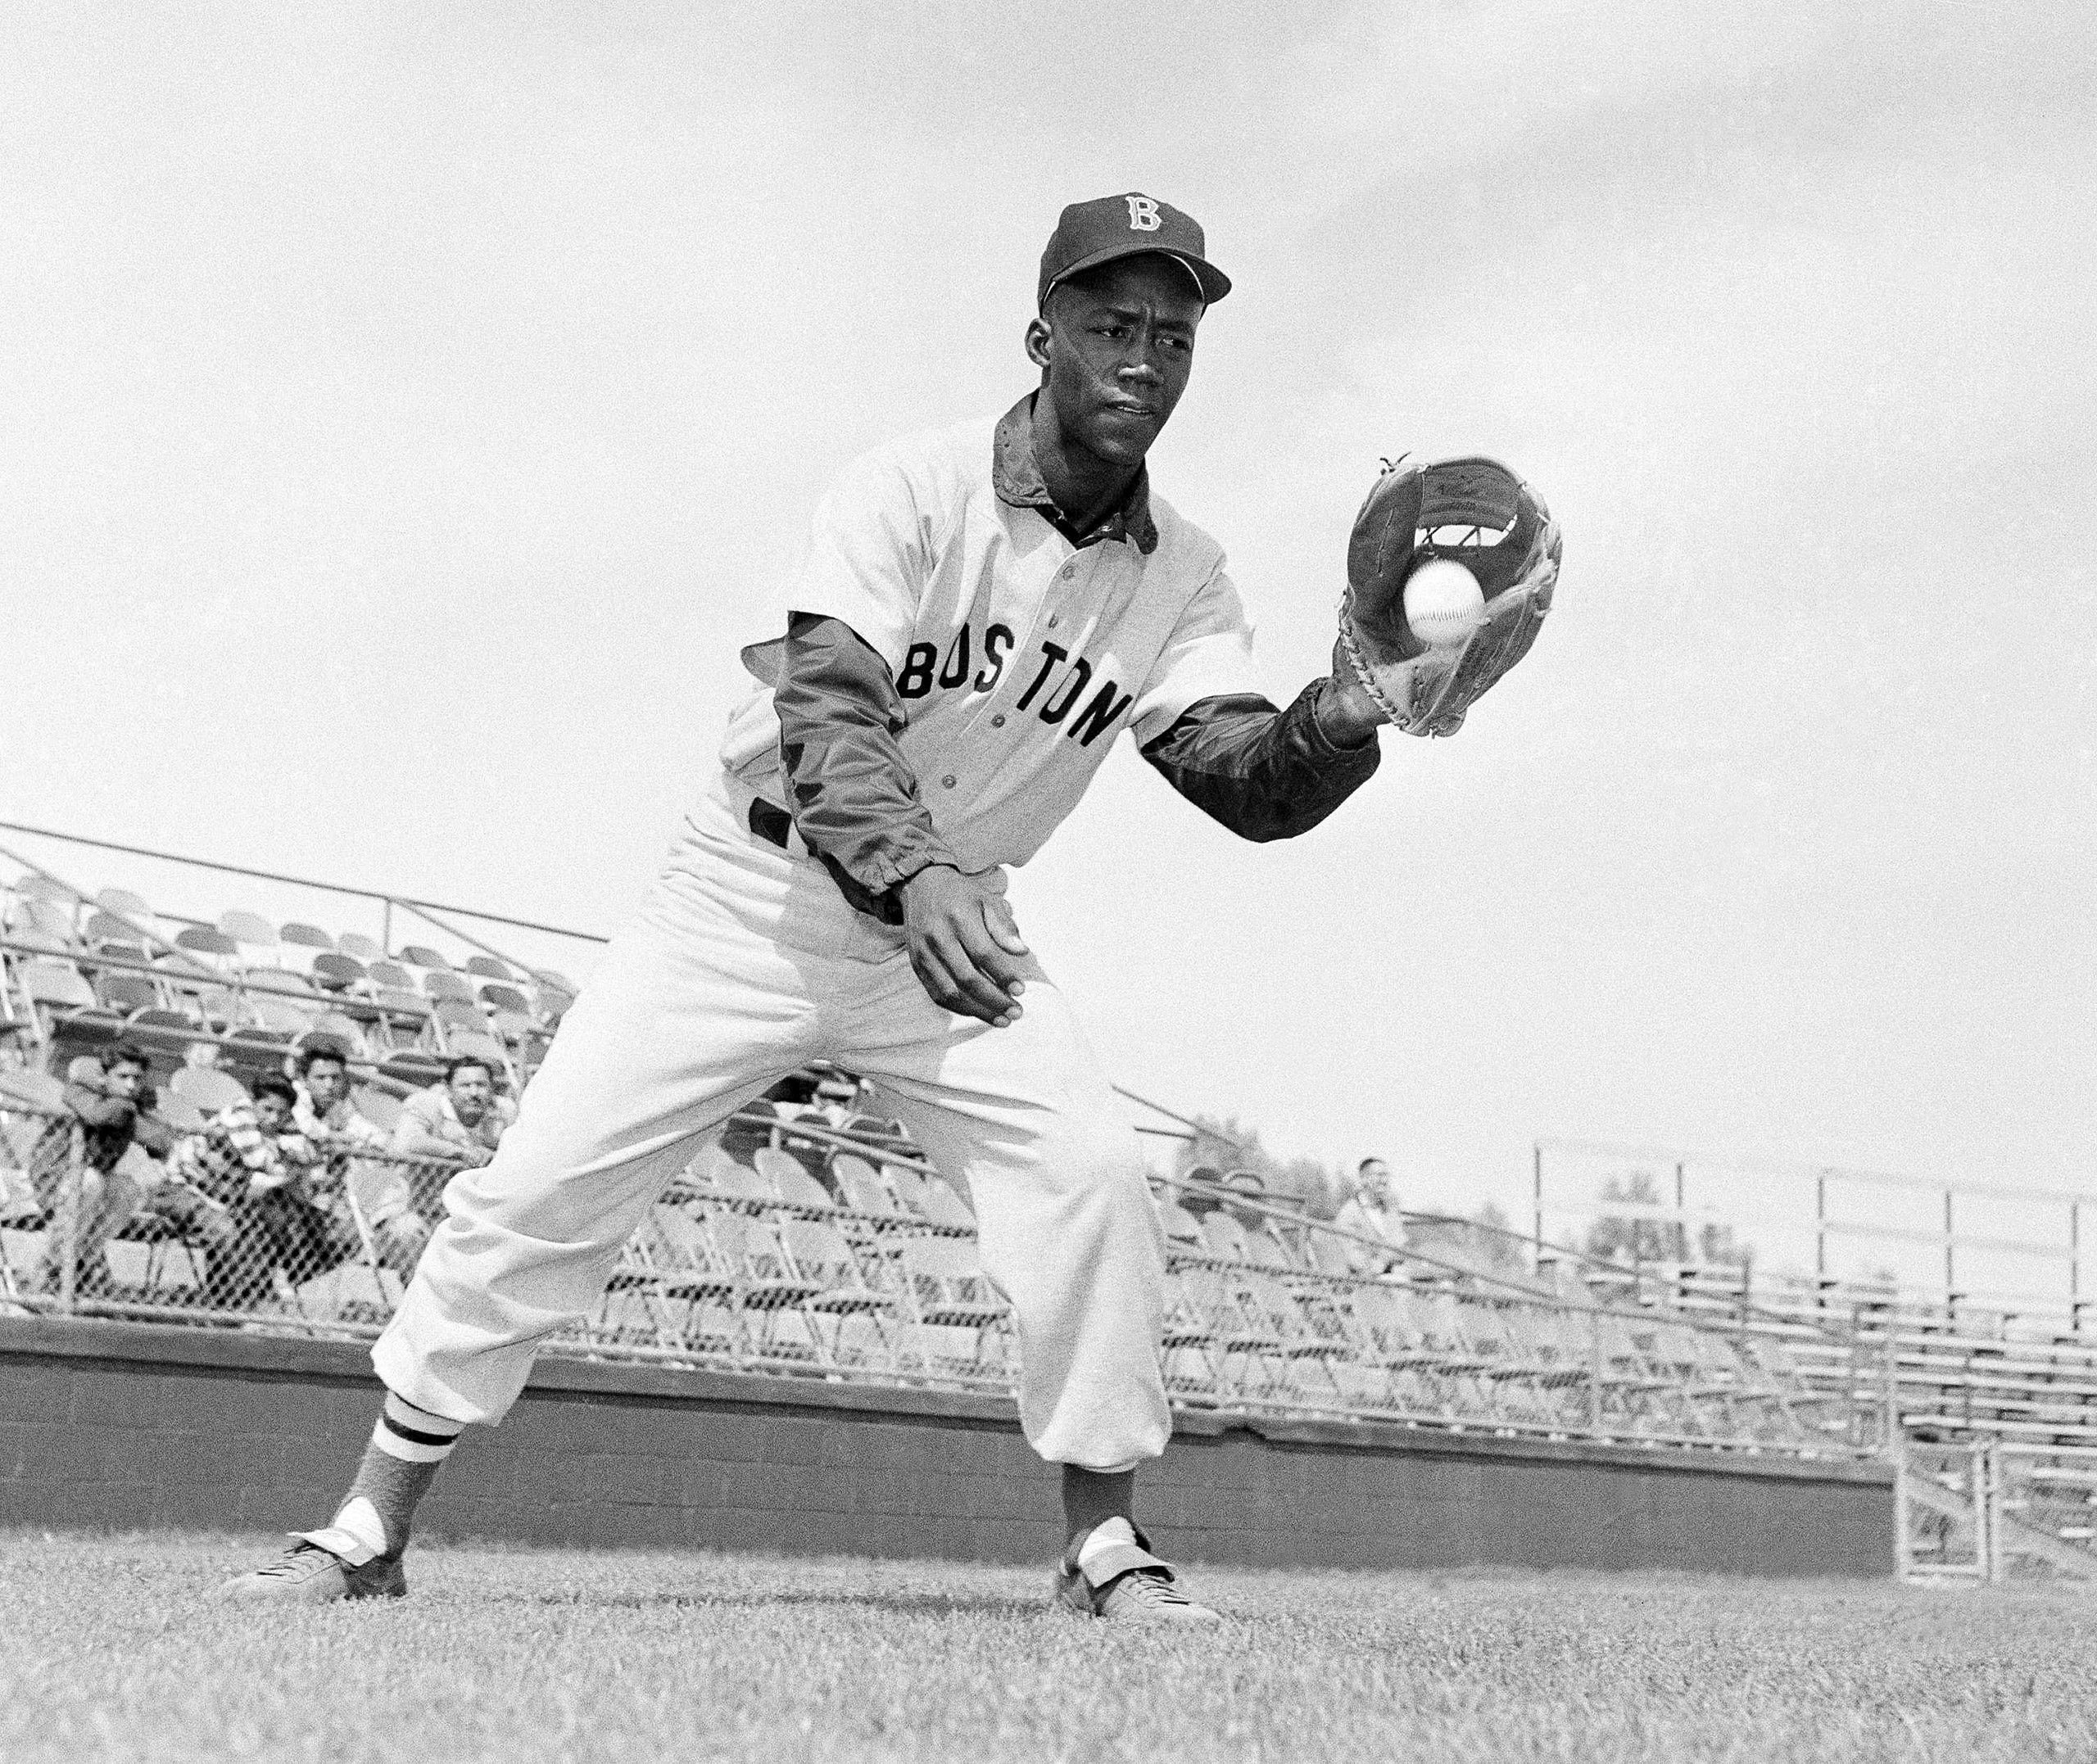 Elijah  Pumpsie  Green, of the Boston Red Sox, shown in action, April 20, 1959. Green was the first black player on the Red Sox.